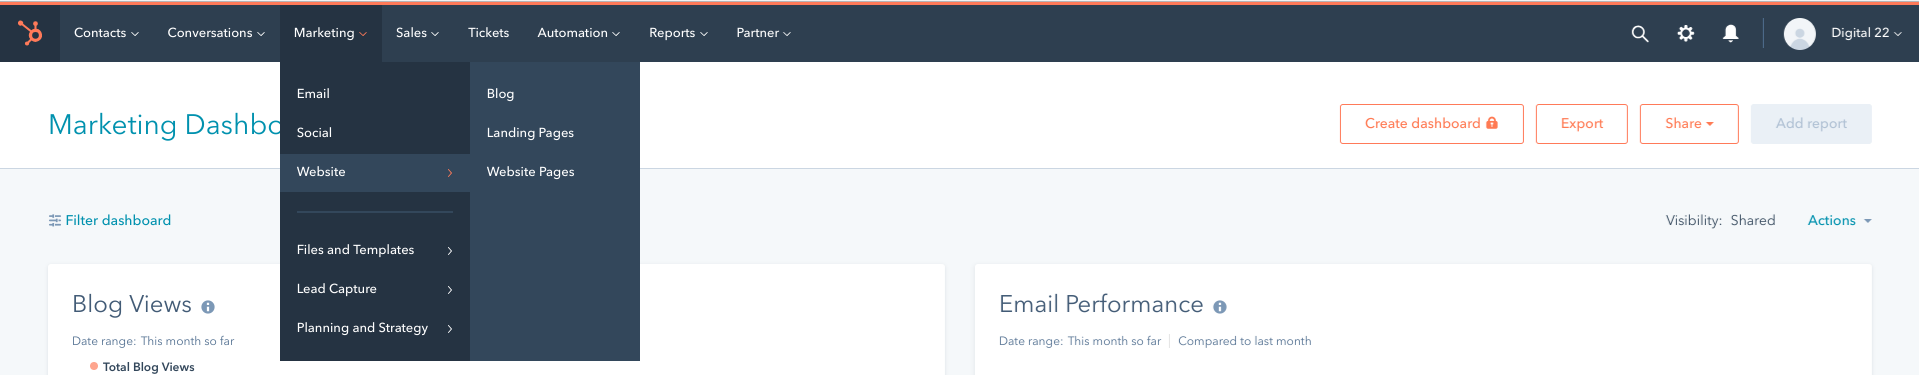 Control Panel Within HubSpot